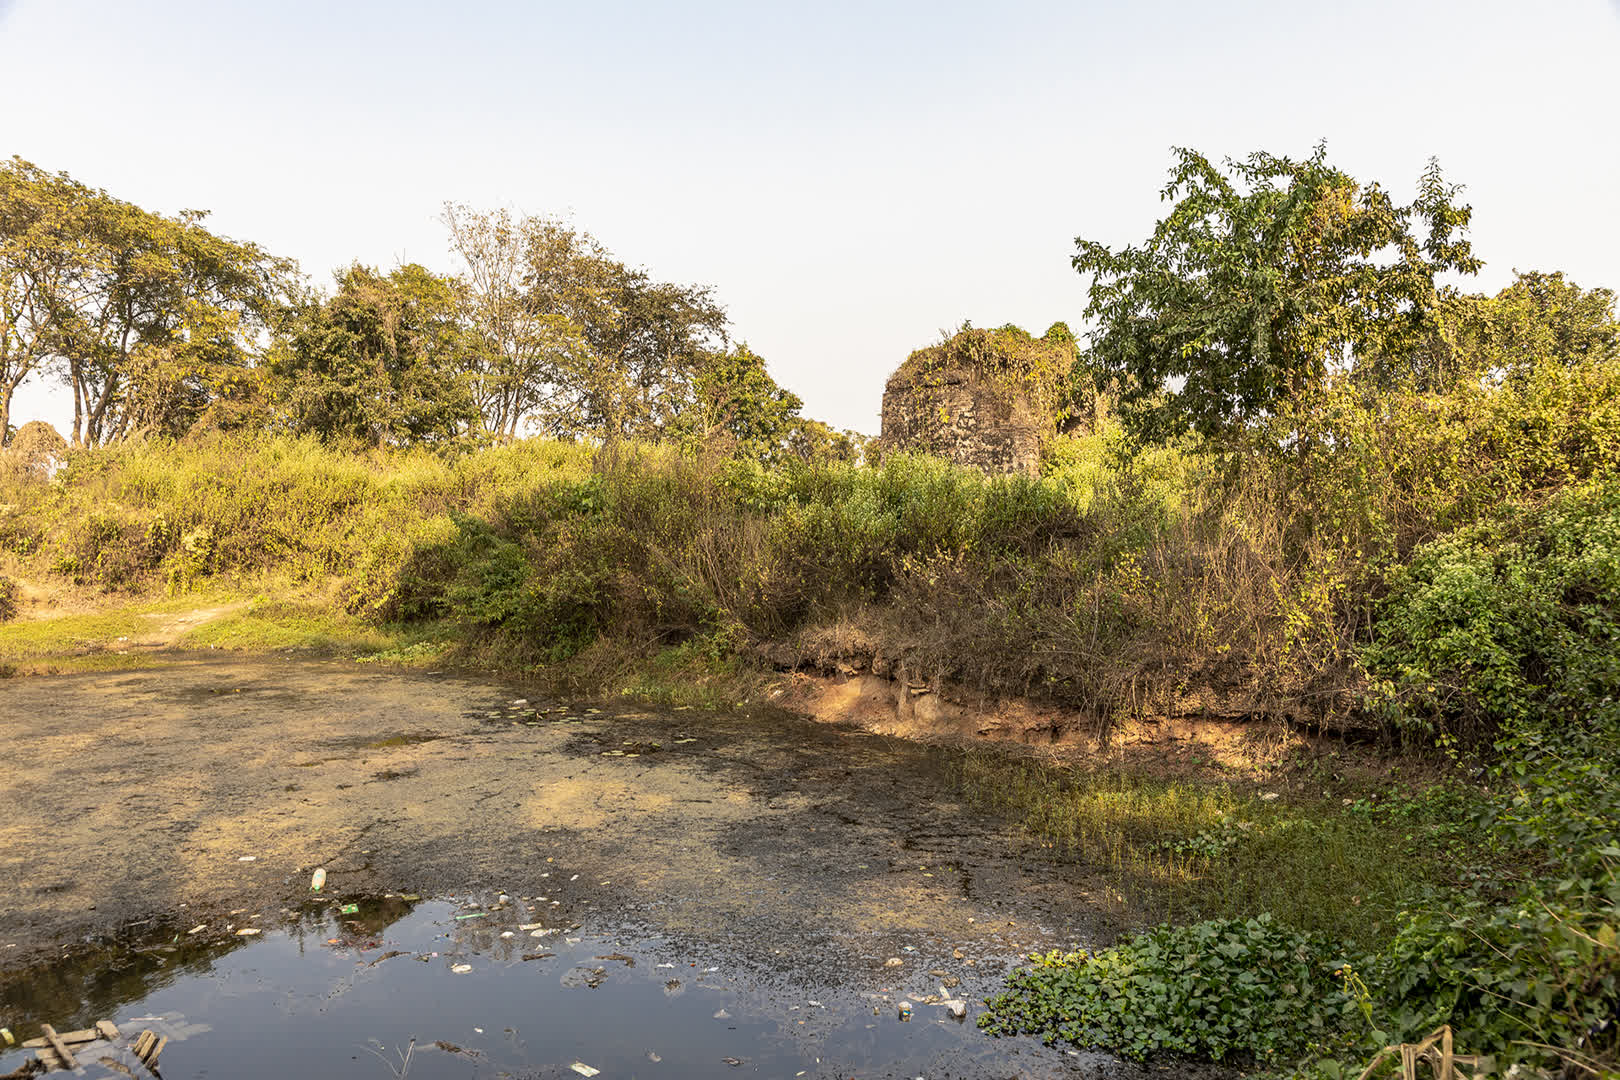 Ruins of Lal Bai's Palace in the distance and the pond she was drowned in